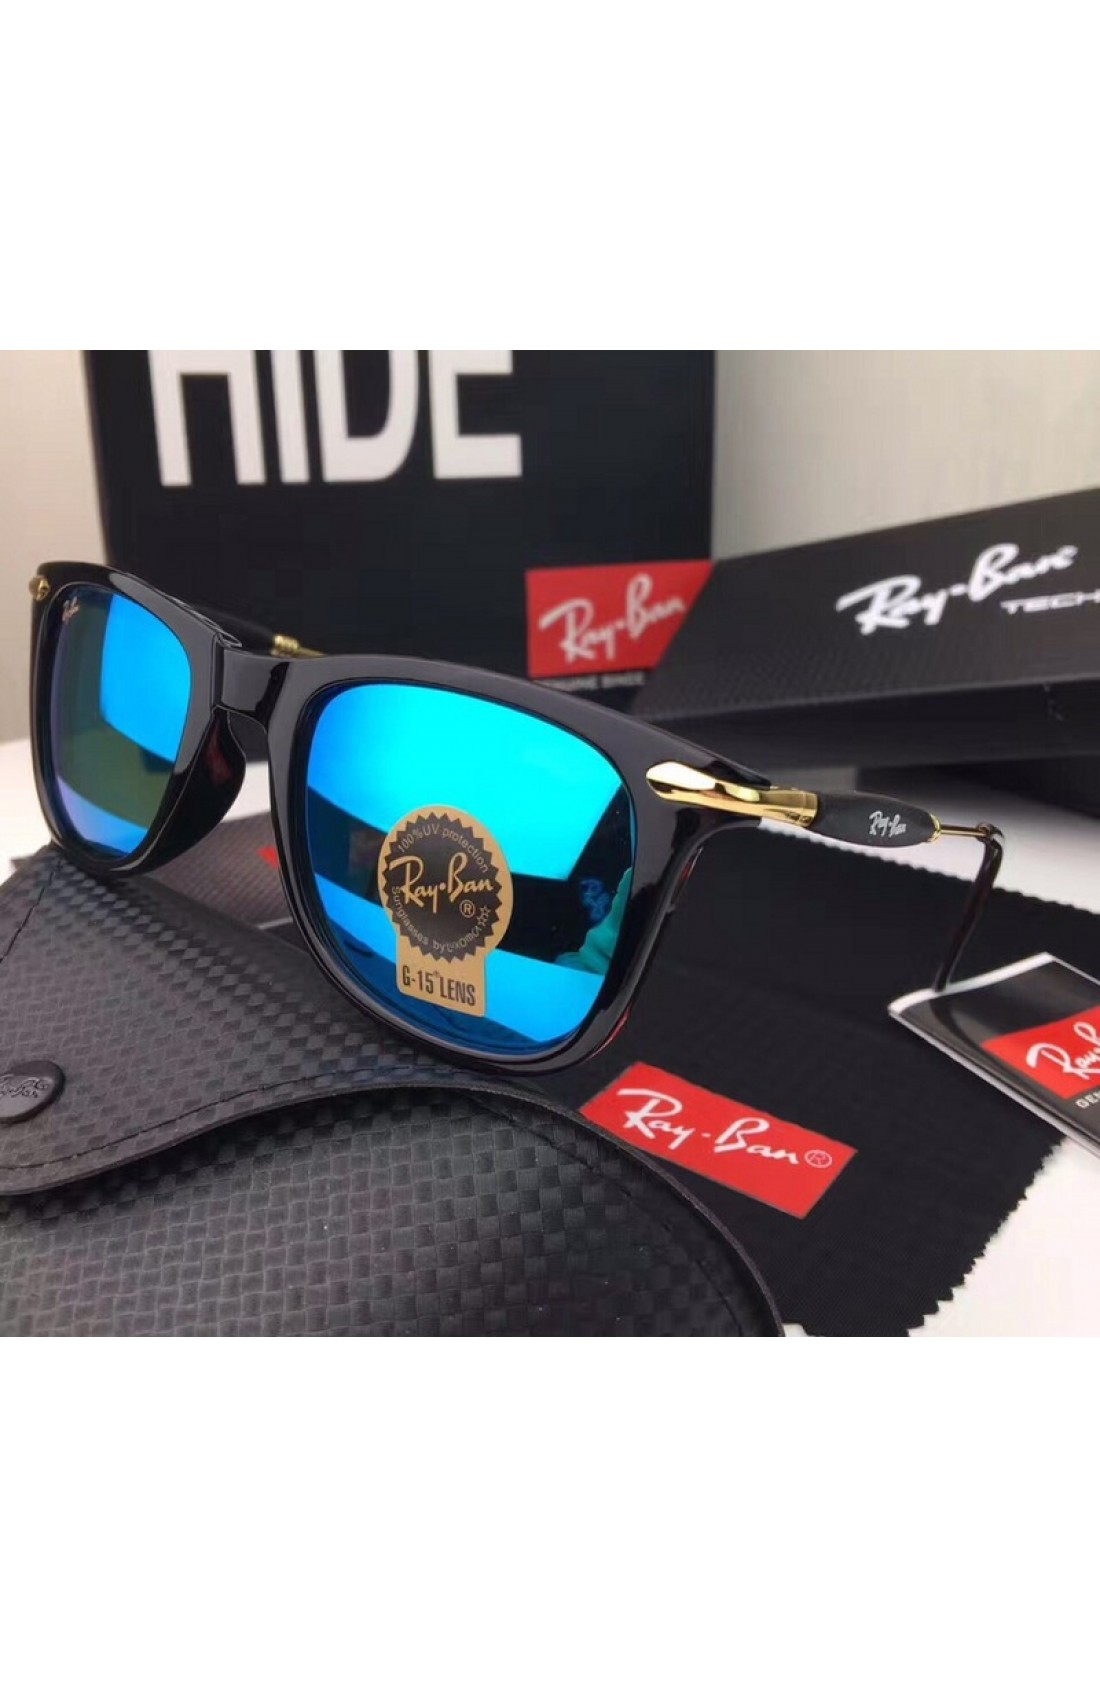 a32d2ccdbe Warehouse Sale Men s Women s Ray Ban RB2148 Sunglasses Blue Lenses Black  Frame